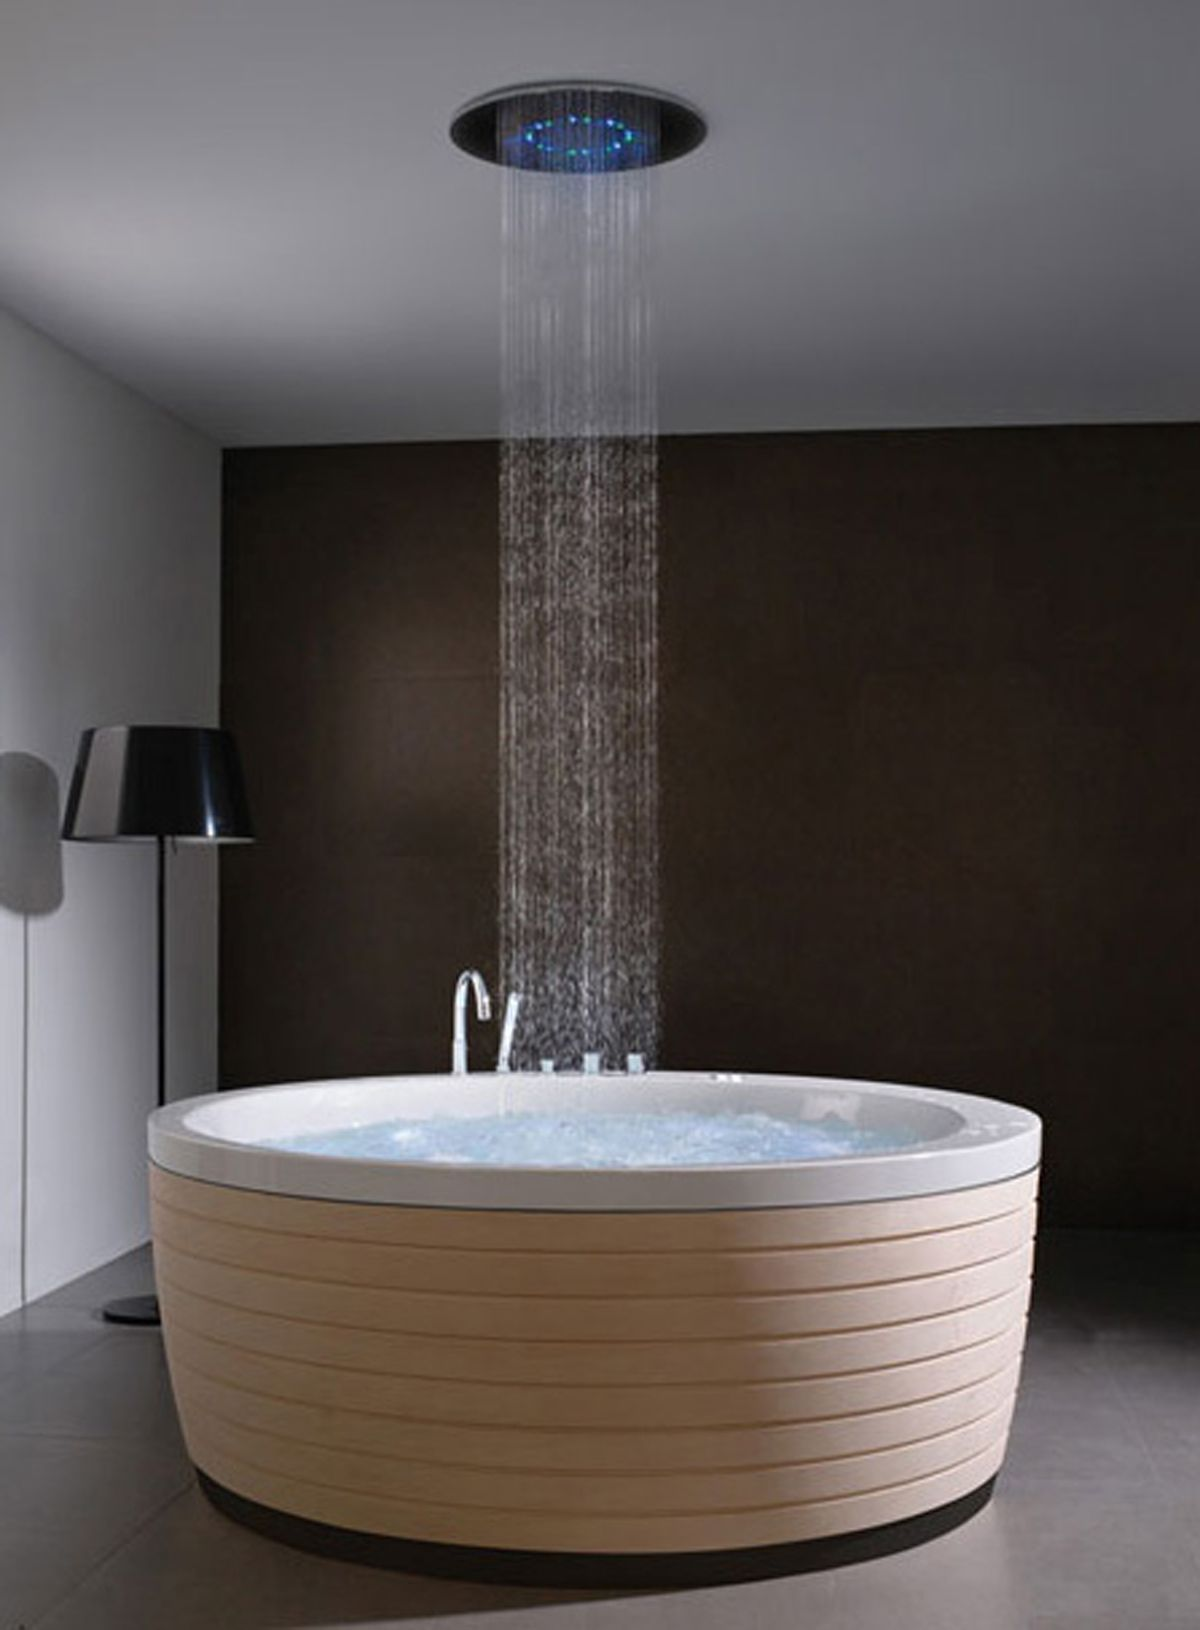 Modern Greek Soaking Tubs With Ceiling Shower Head With Blue Light